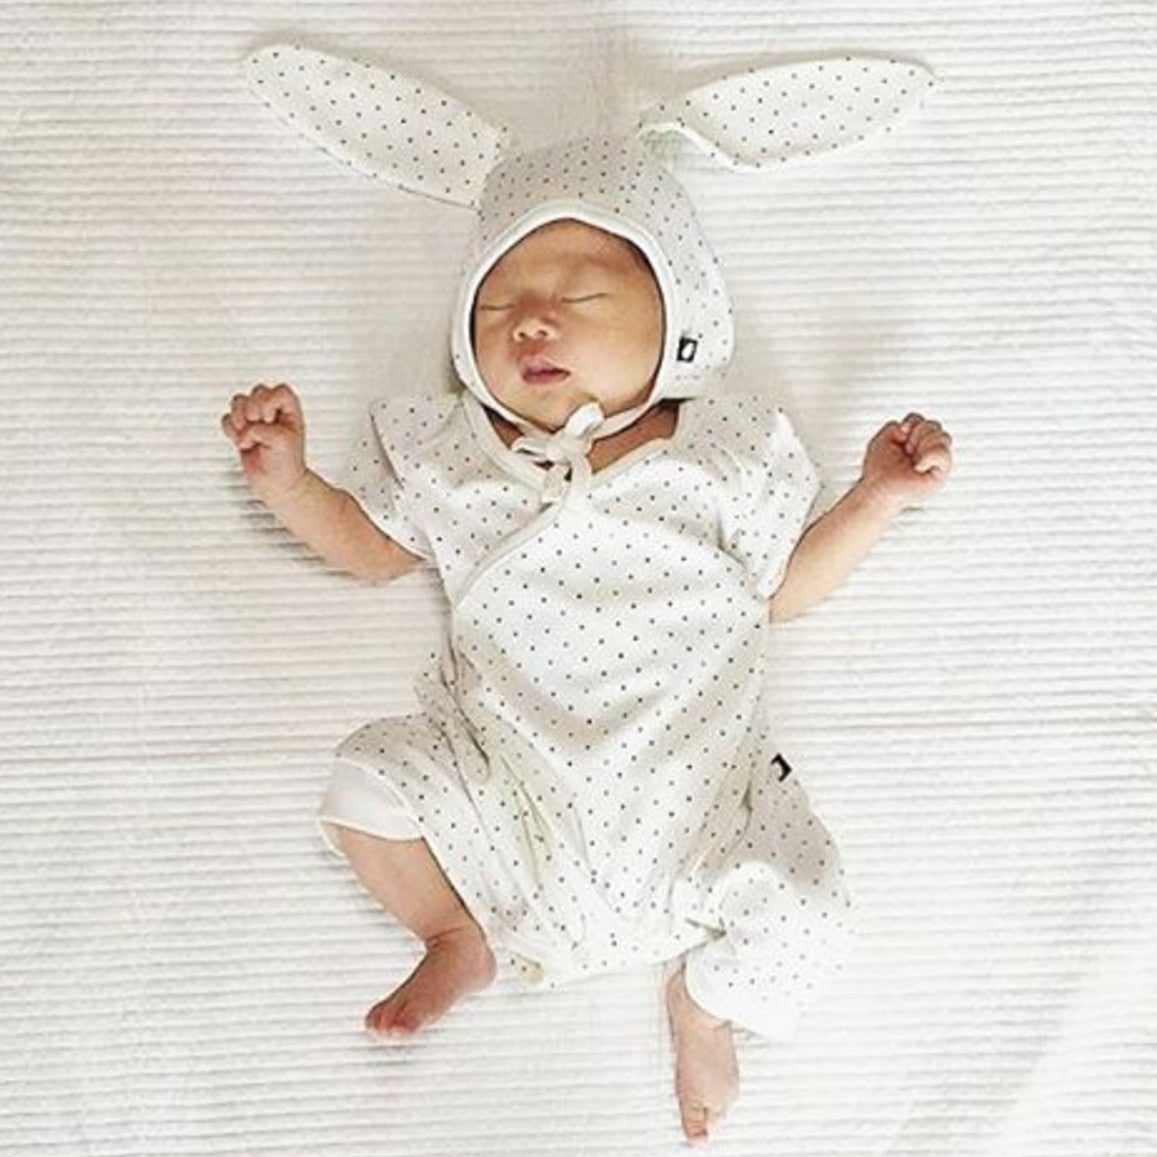 Baby with bunny hat from Bonjour Baby Baskets